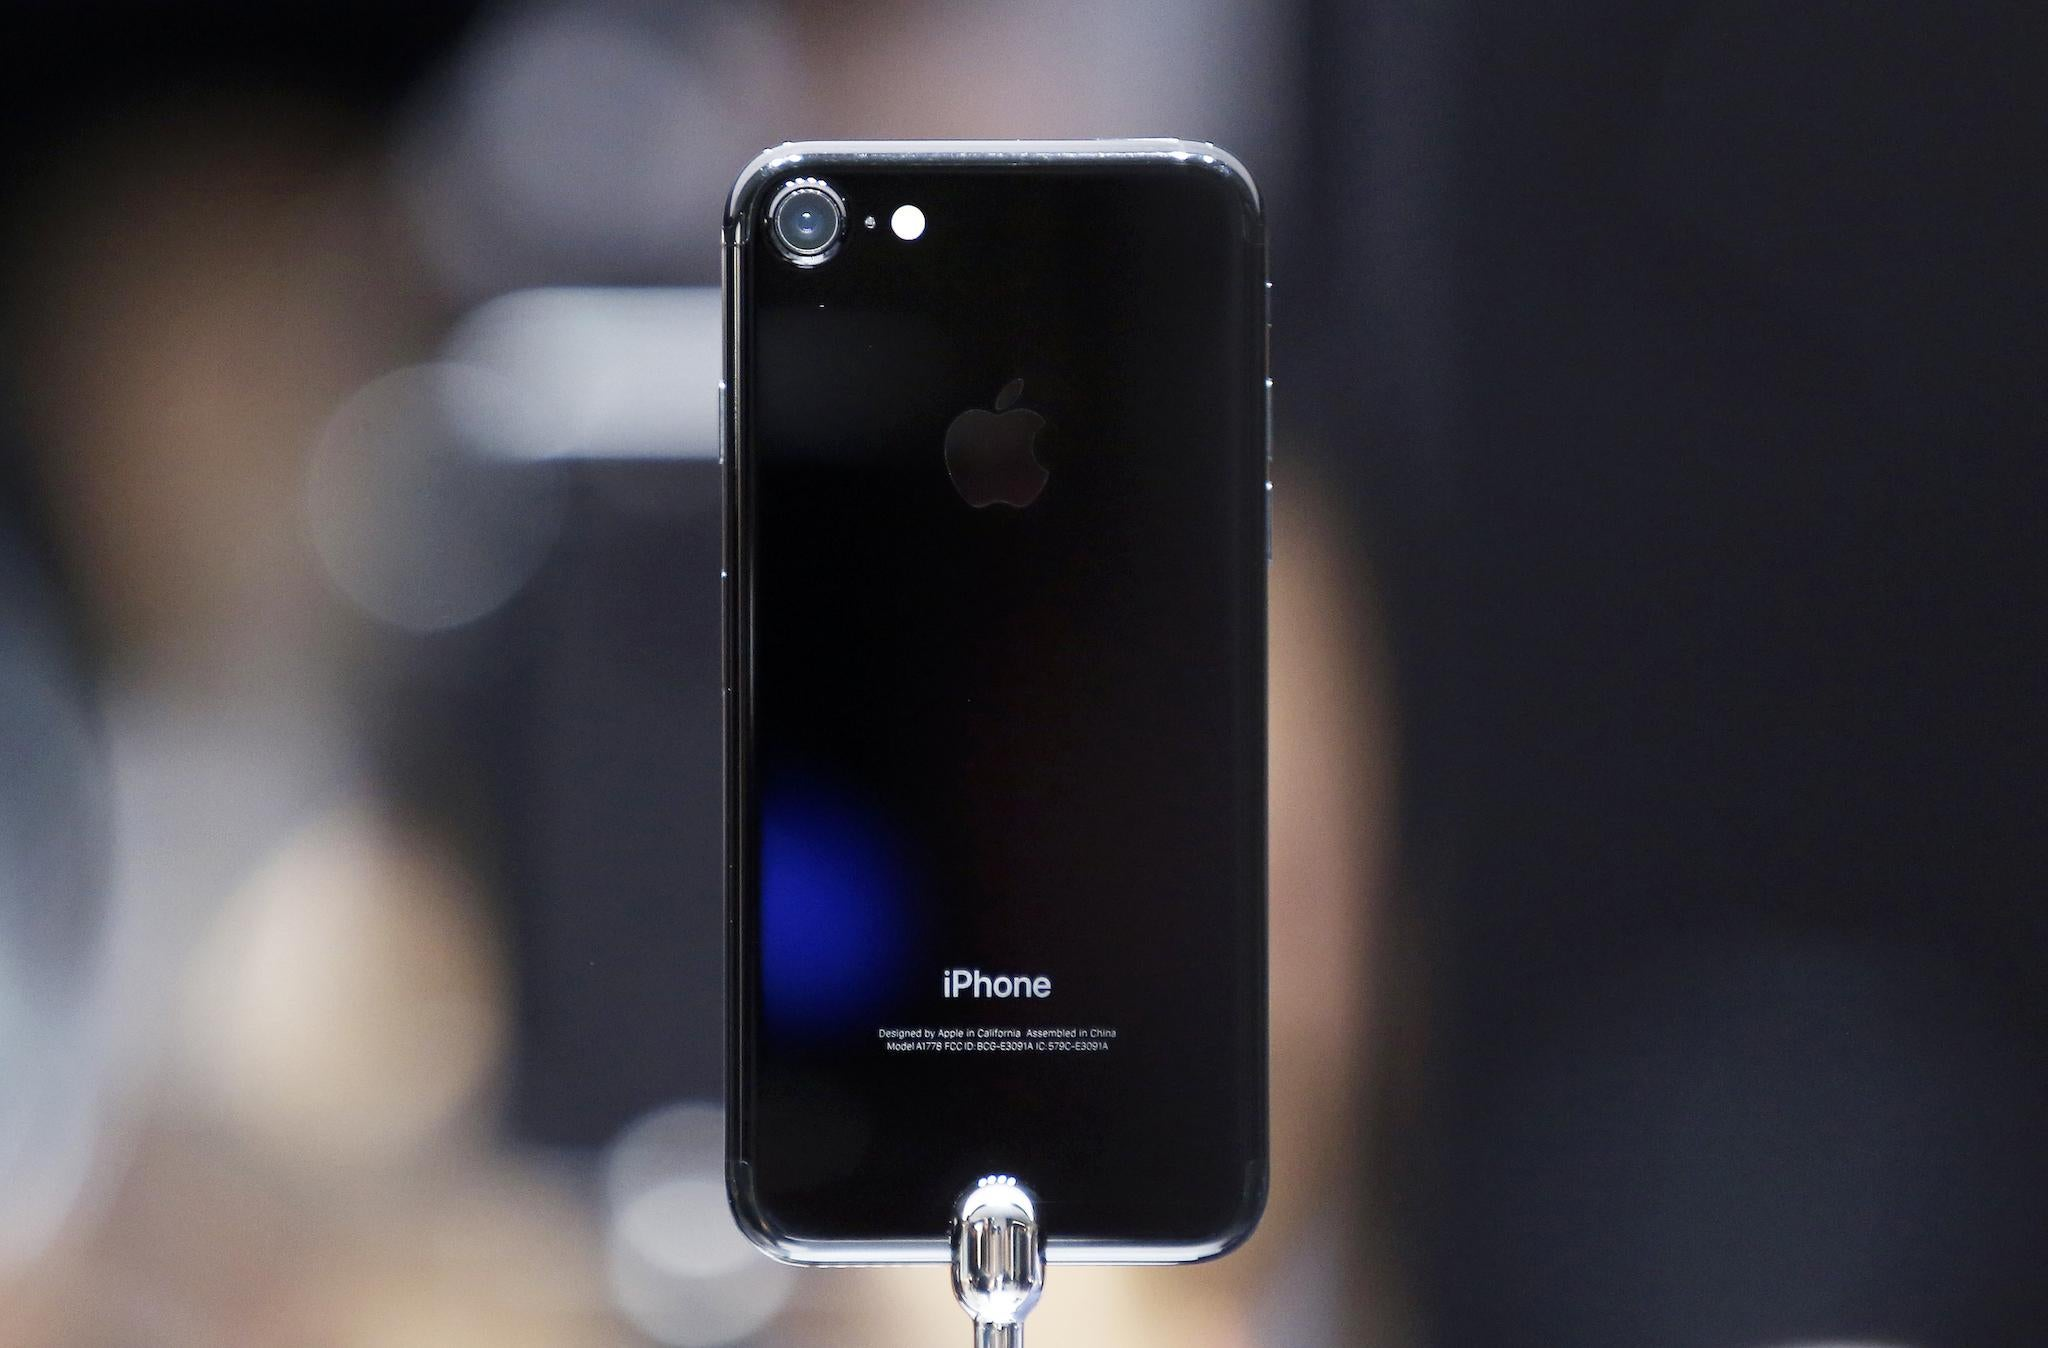 iPhone 7 owners say new phones are hissing at their users